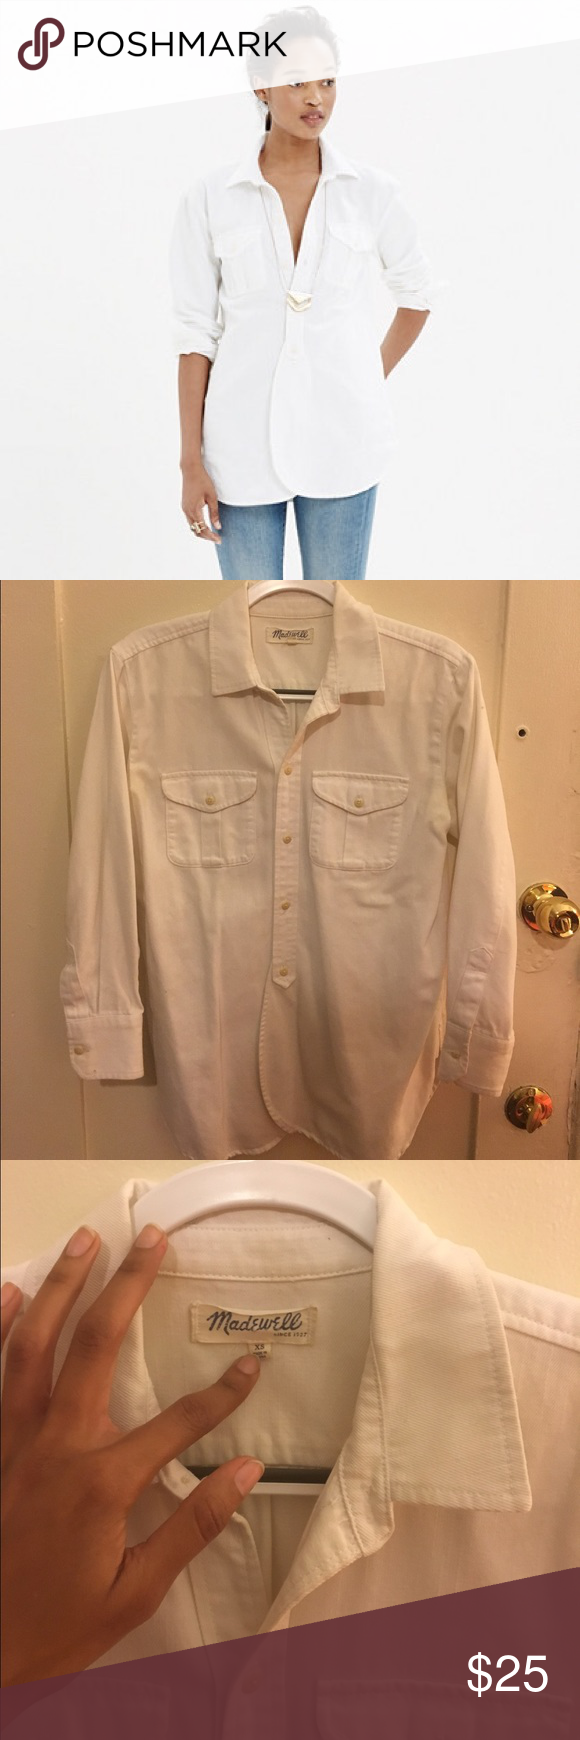 Madewell Pure White Denim Cargo Workshort light pen mark on shoulder - selling at huge discount! this shirt runs large, i am normally a medium and wear an XS on this button up shirt. Our signature workshirt gets a low-key makeover. Soft  and lovingly worn in, this one has overlapping shirttails in front for that easy undone look we love. Madewell Tops Button Down Shirts